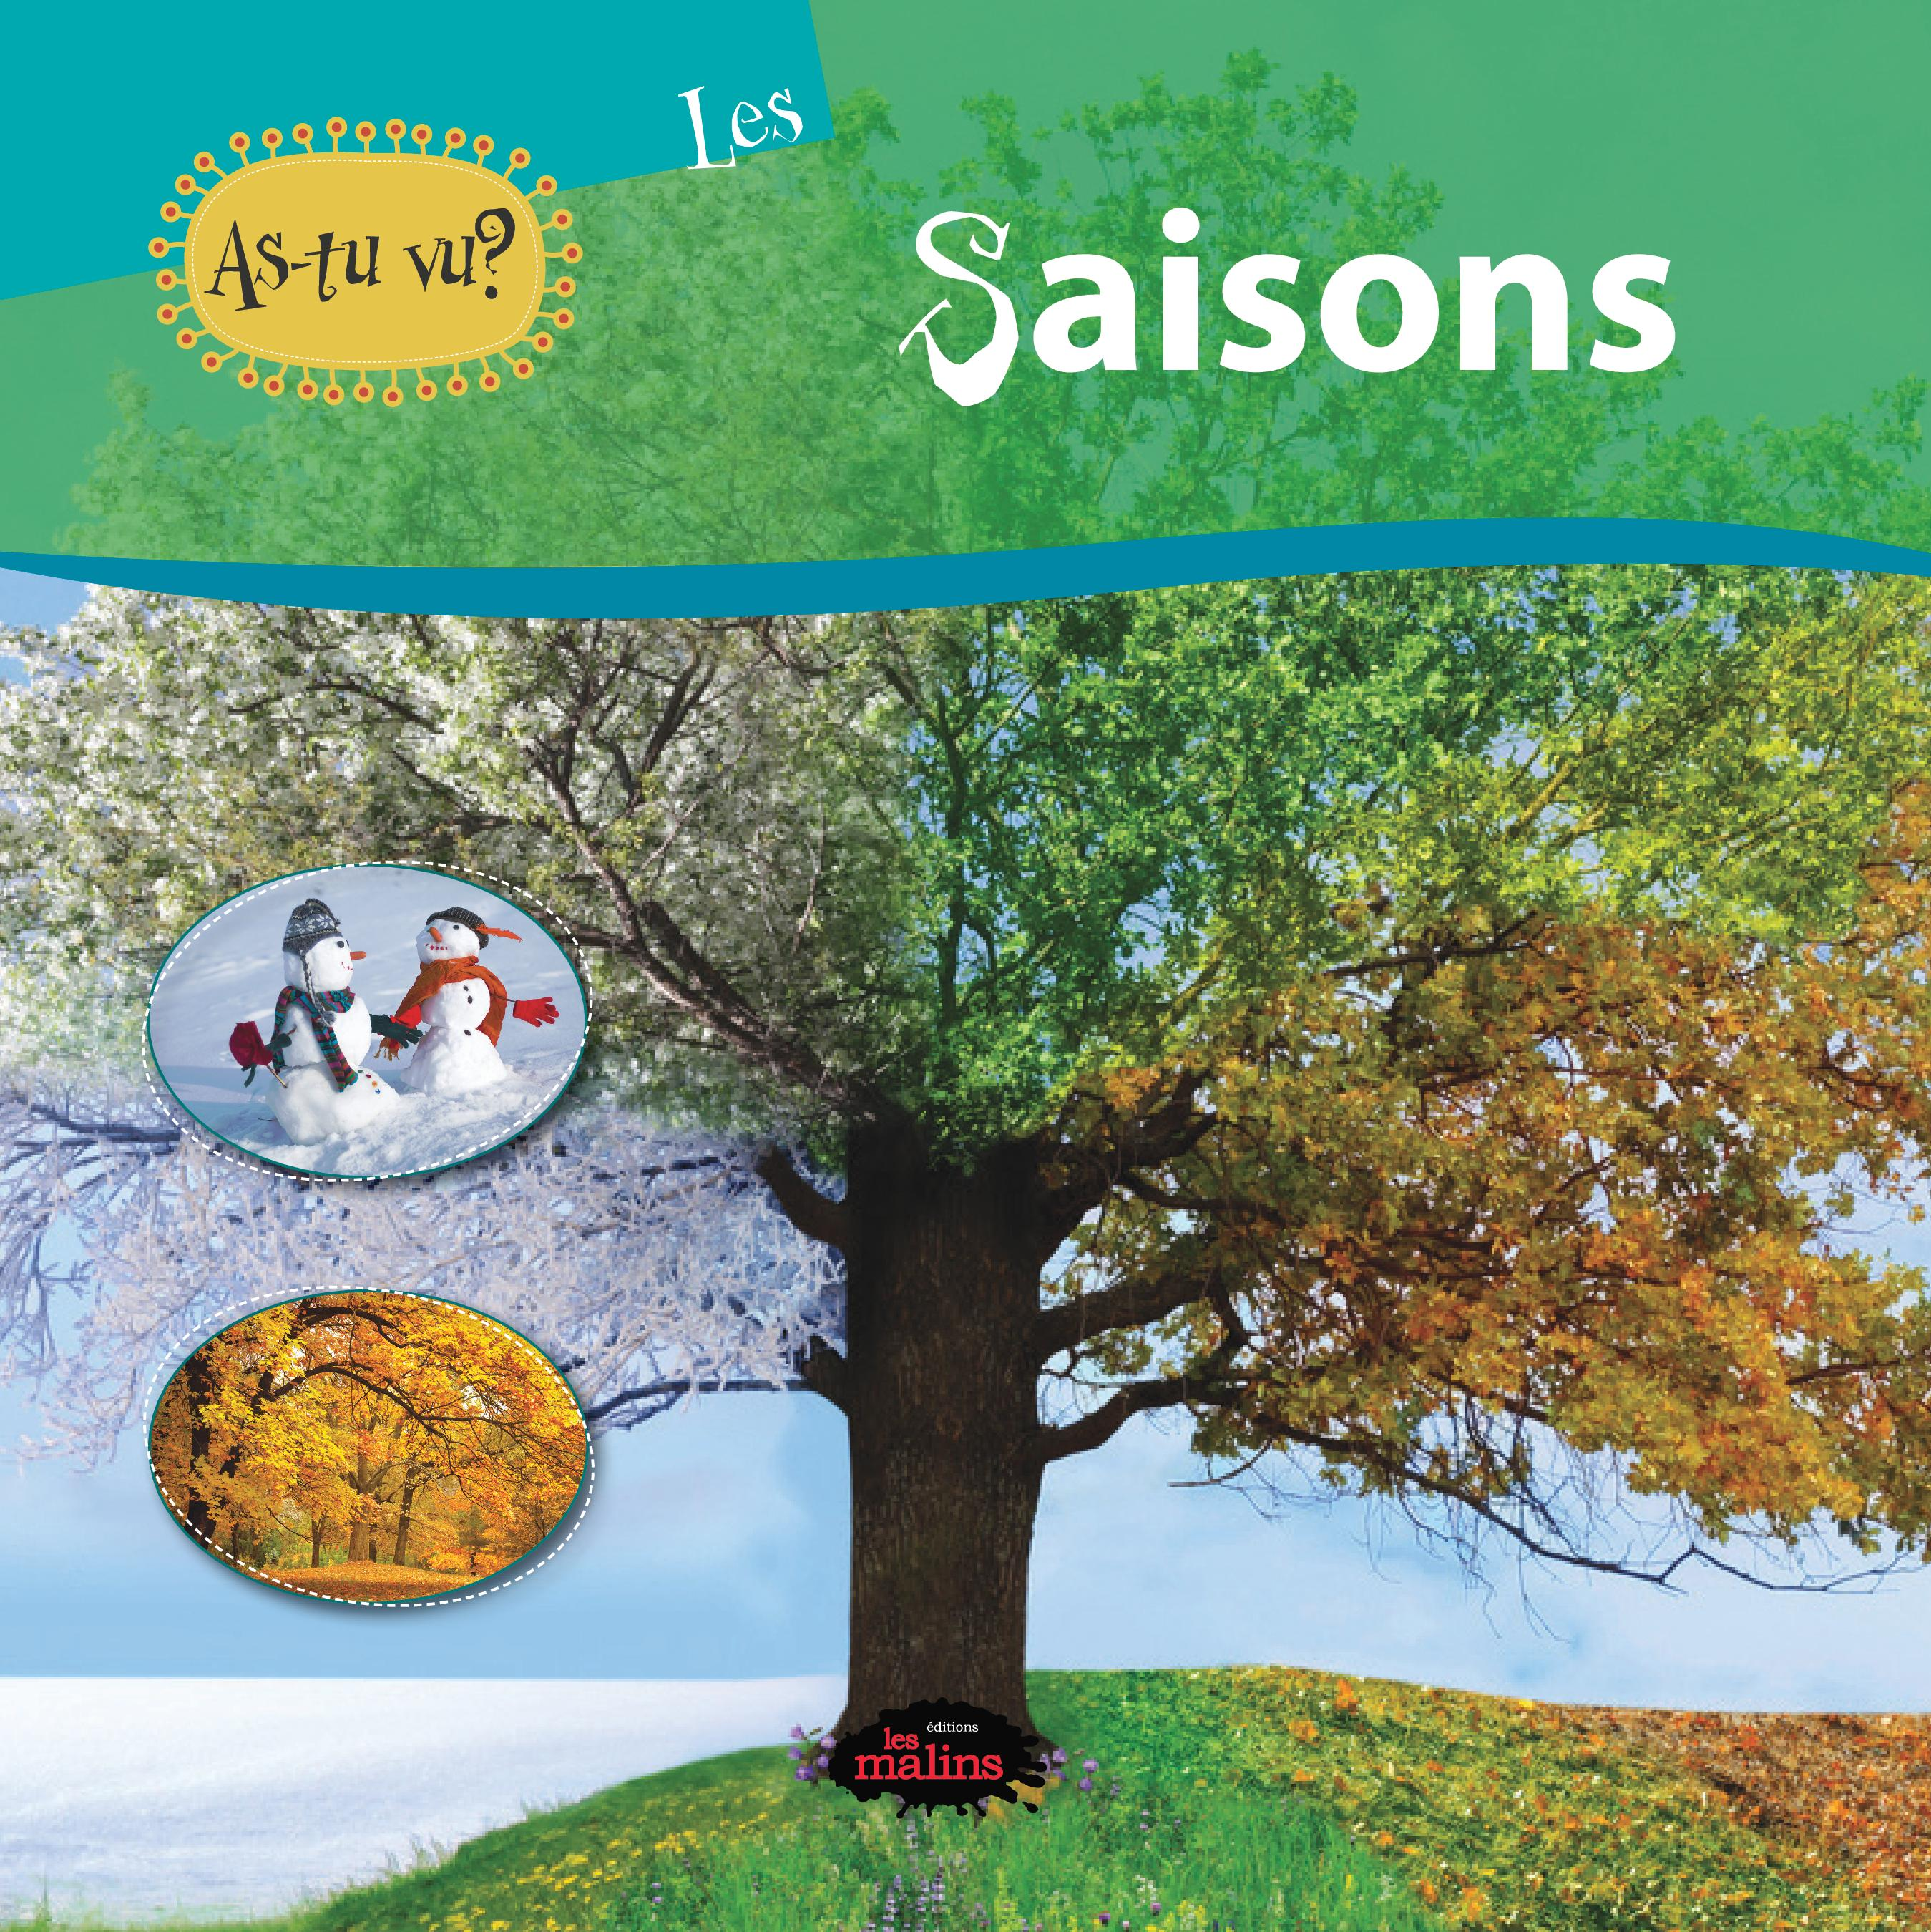 As-tu vu? Les saisons